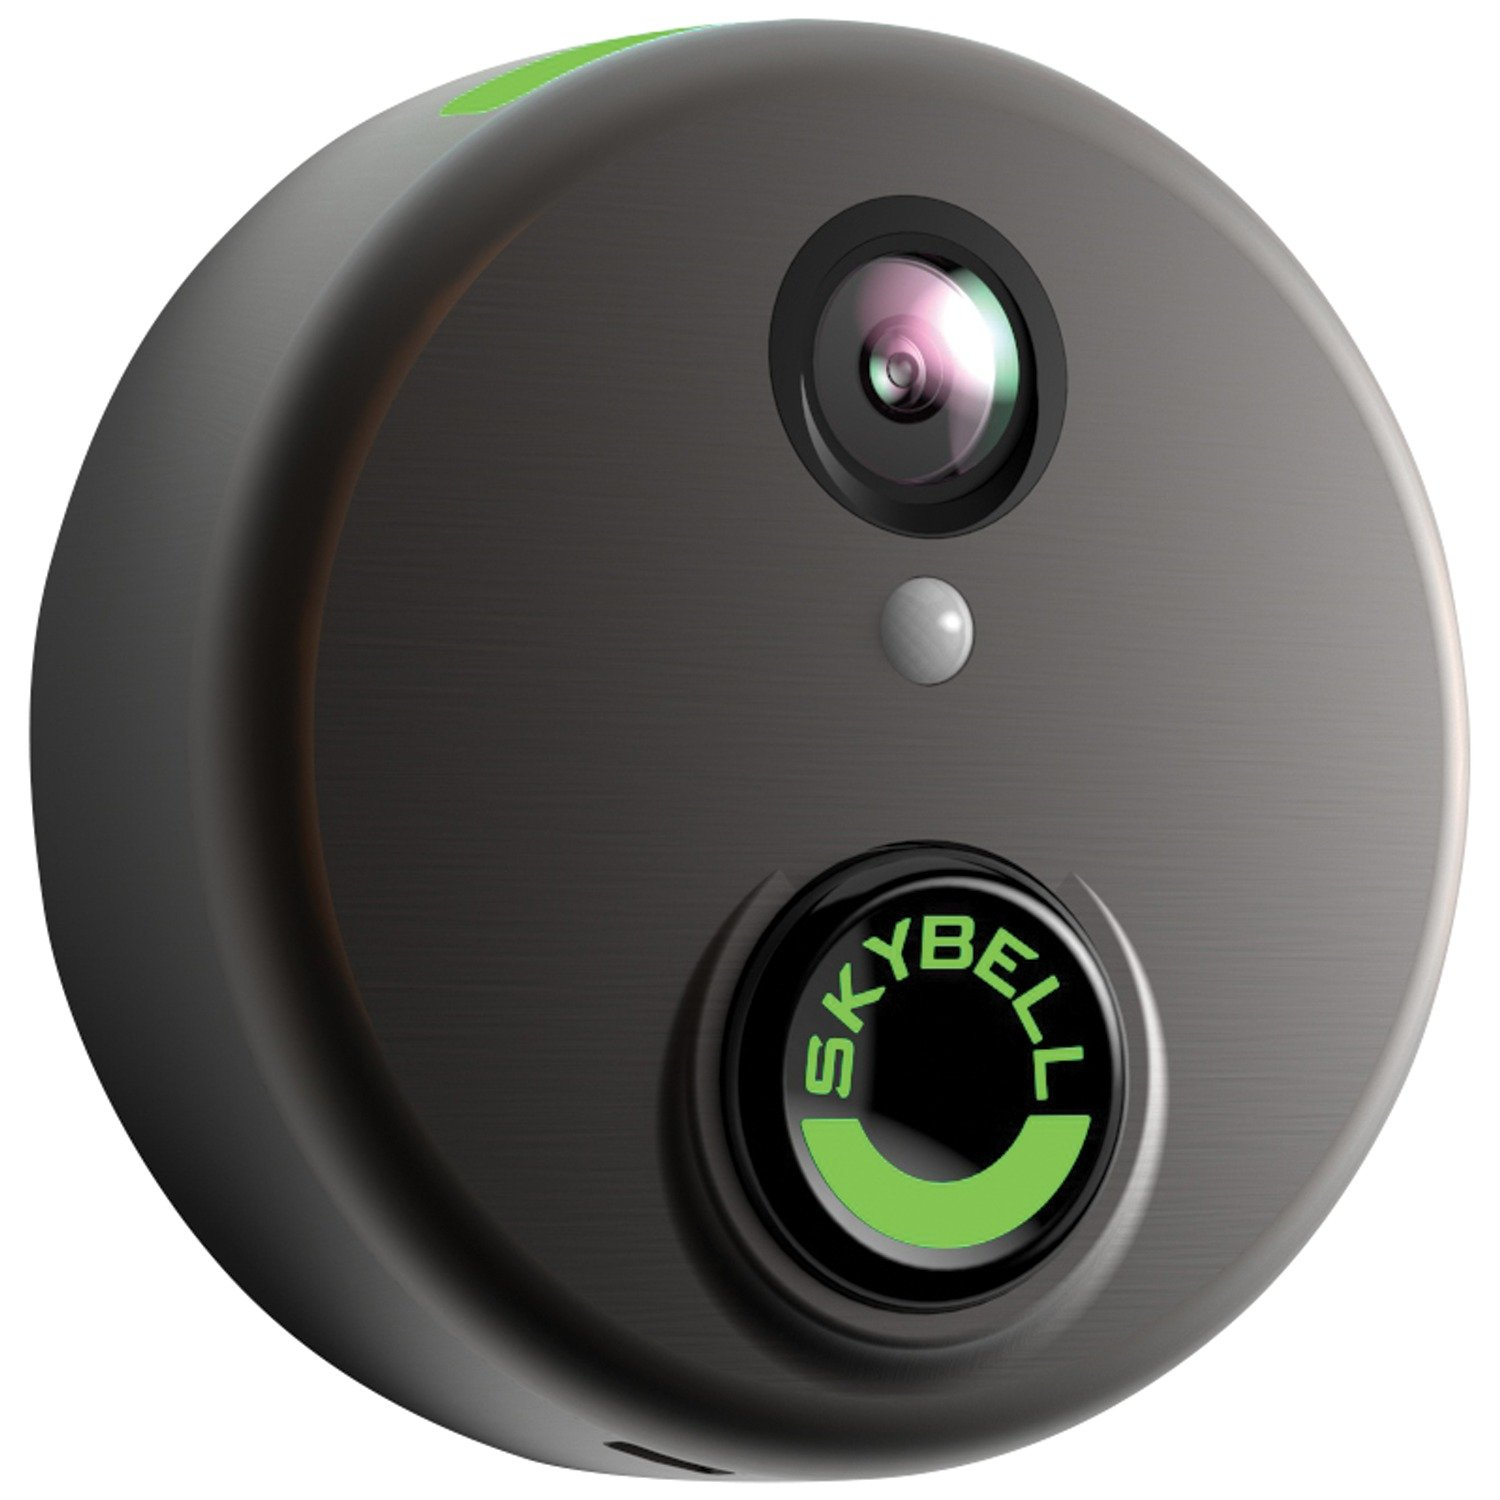 SkyBell (SH02300BZ) HD Bronze WiFi Video Doorbell